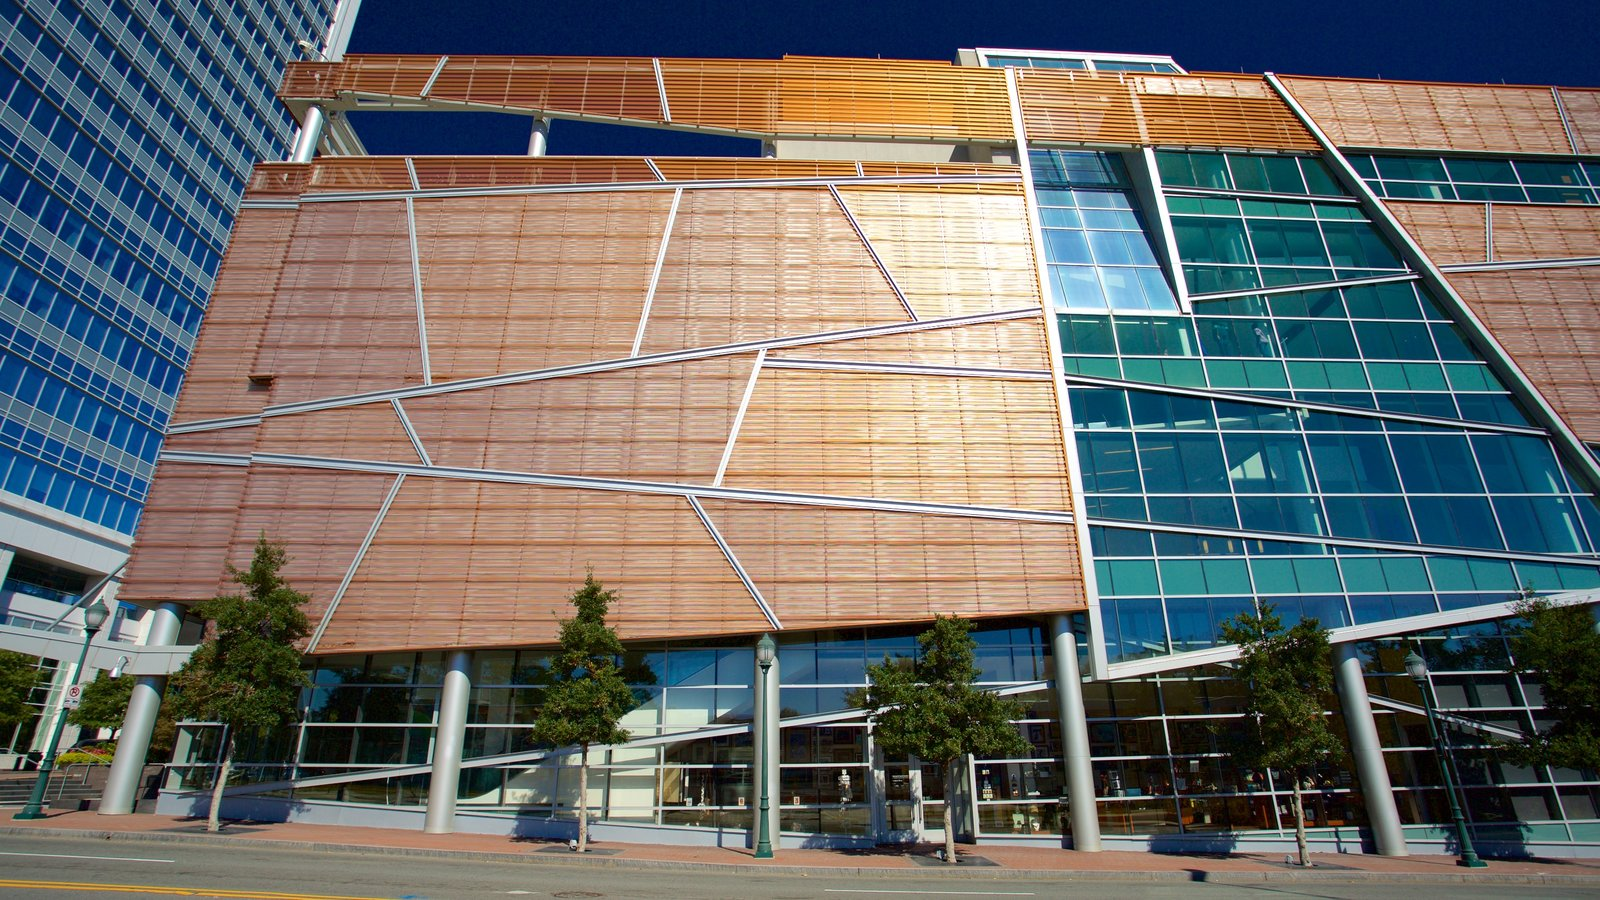 Modern Architecture North Carolina modern architecture pictures: view images of north carolina